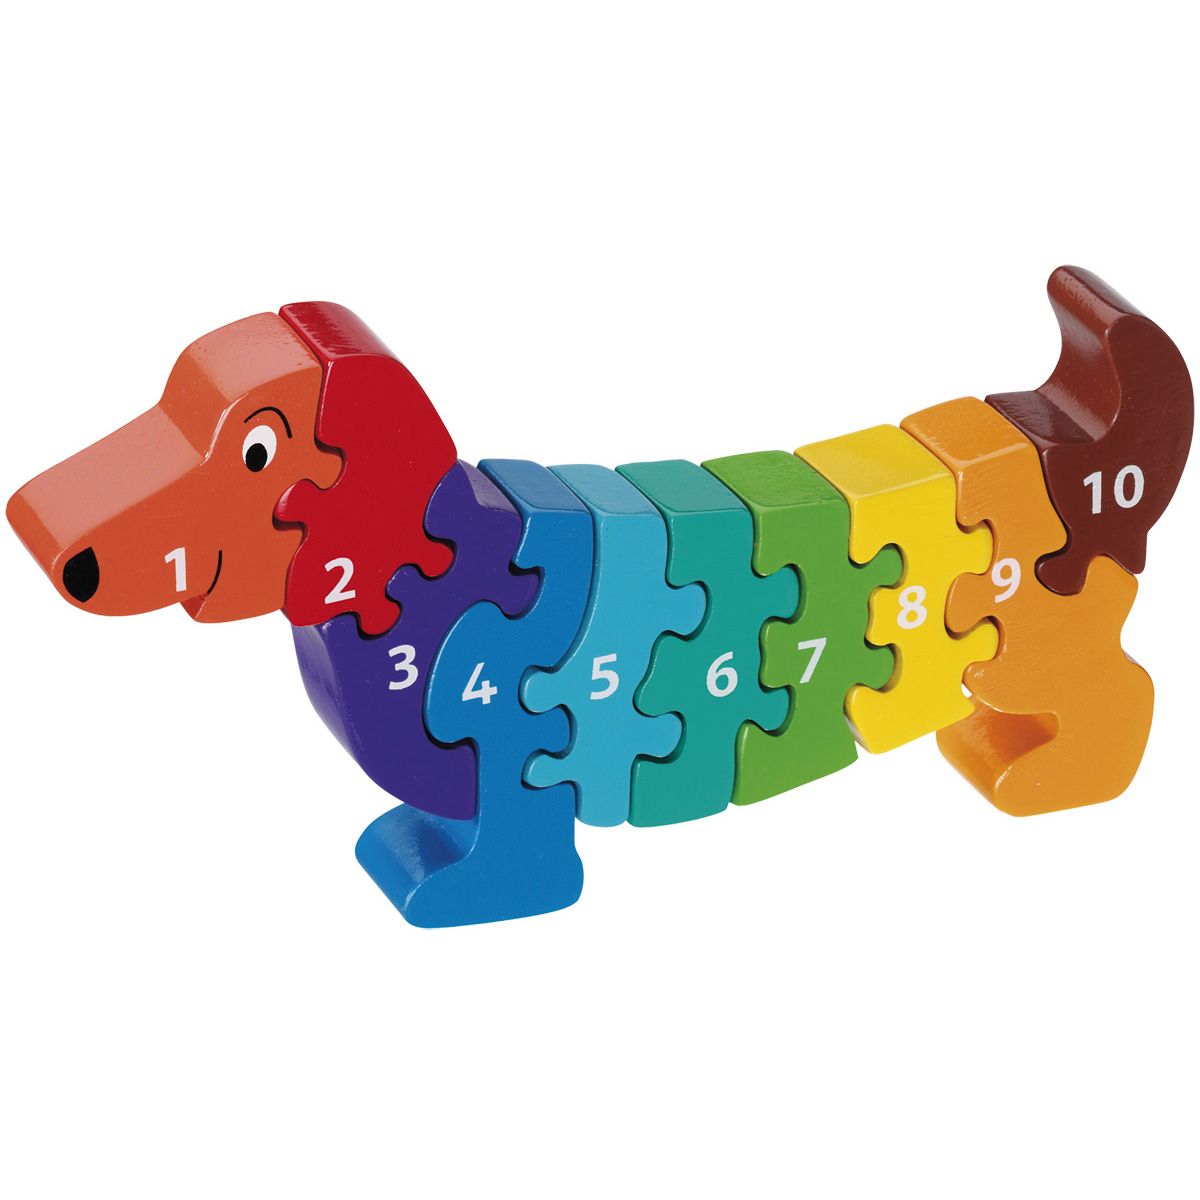 Dachshund 1 10 Number Puzzle Wooden Toys For Children